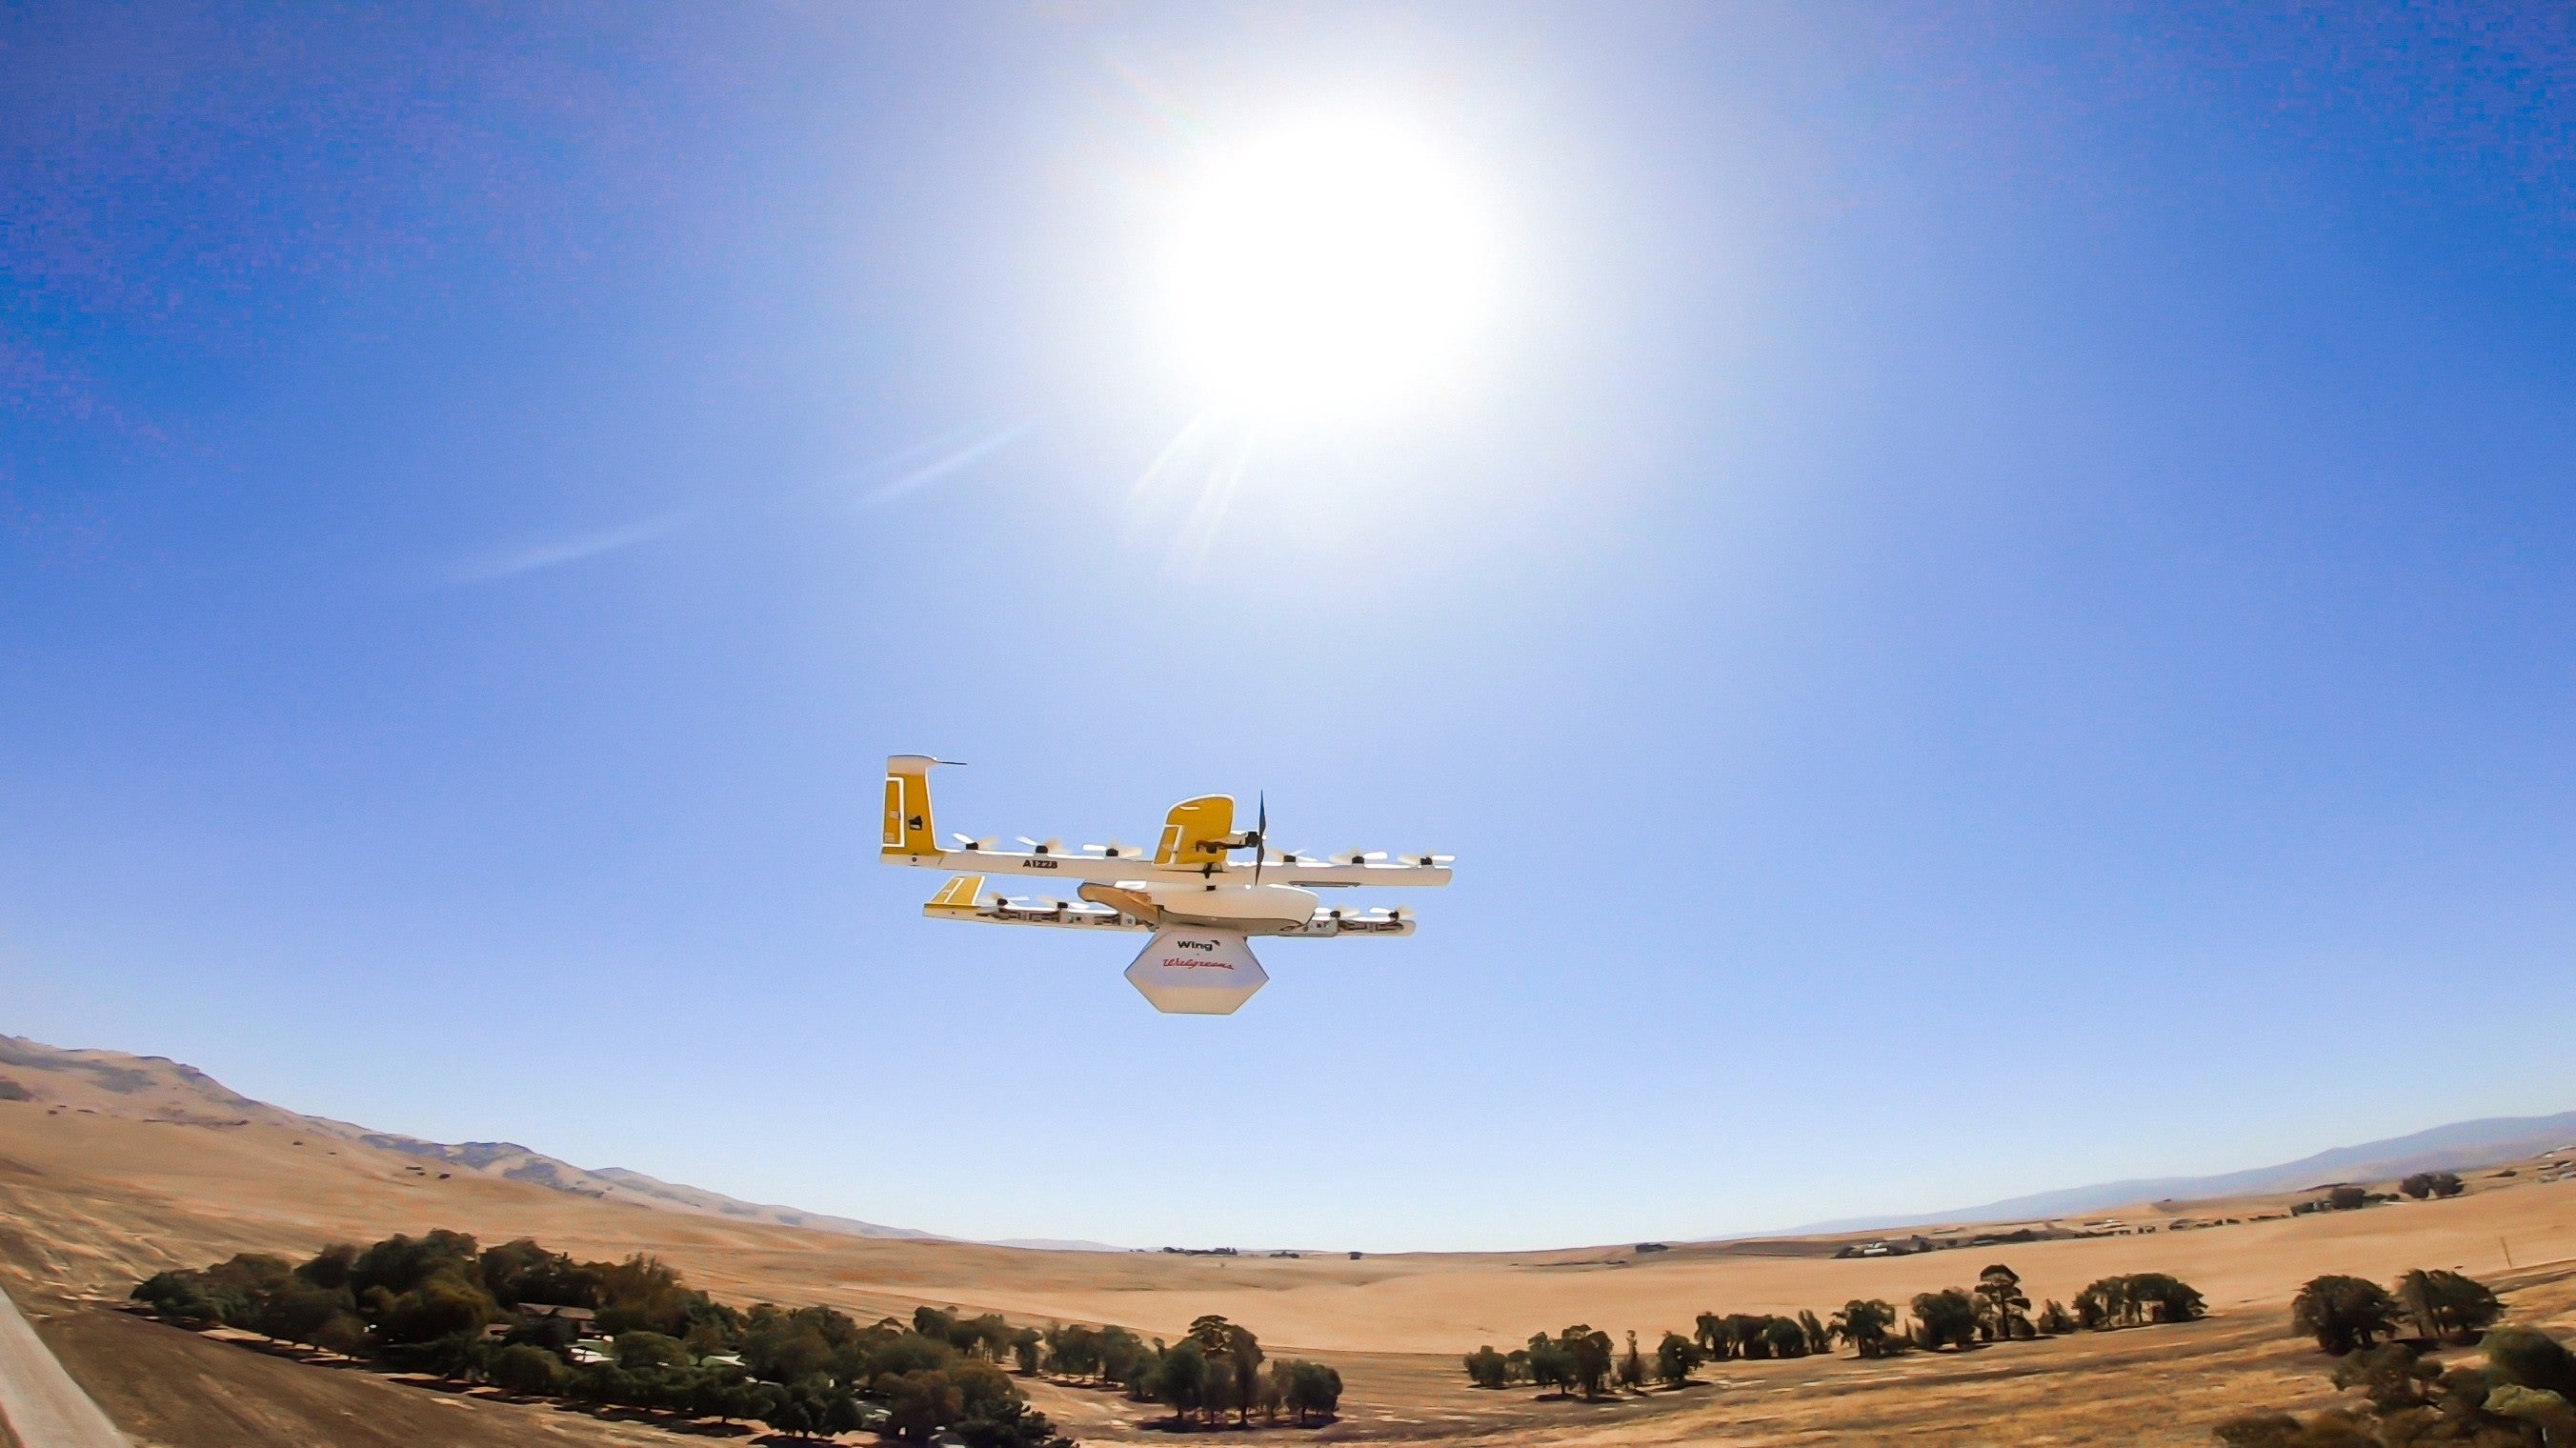 Alphabet's Drone Unit Partners With FedEx And Walgreens For Drone Deliveries